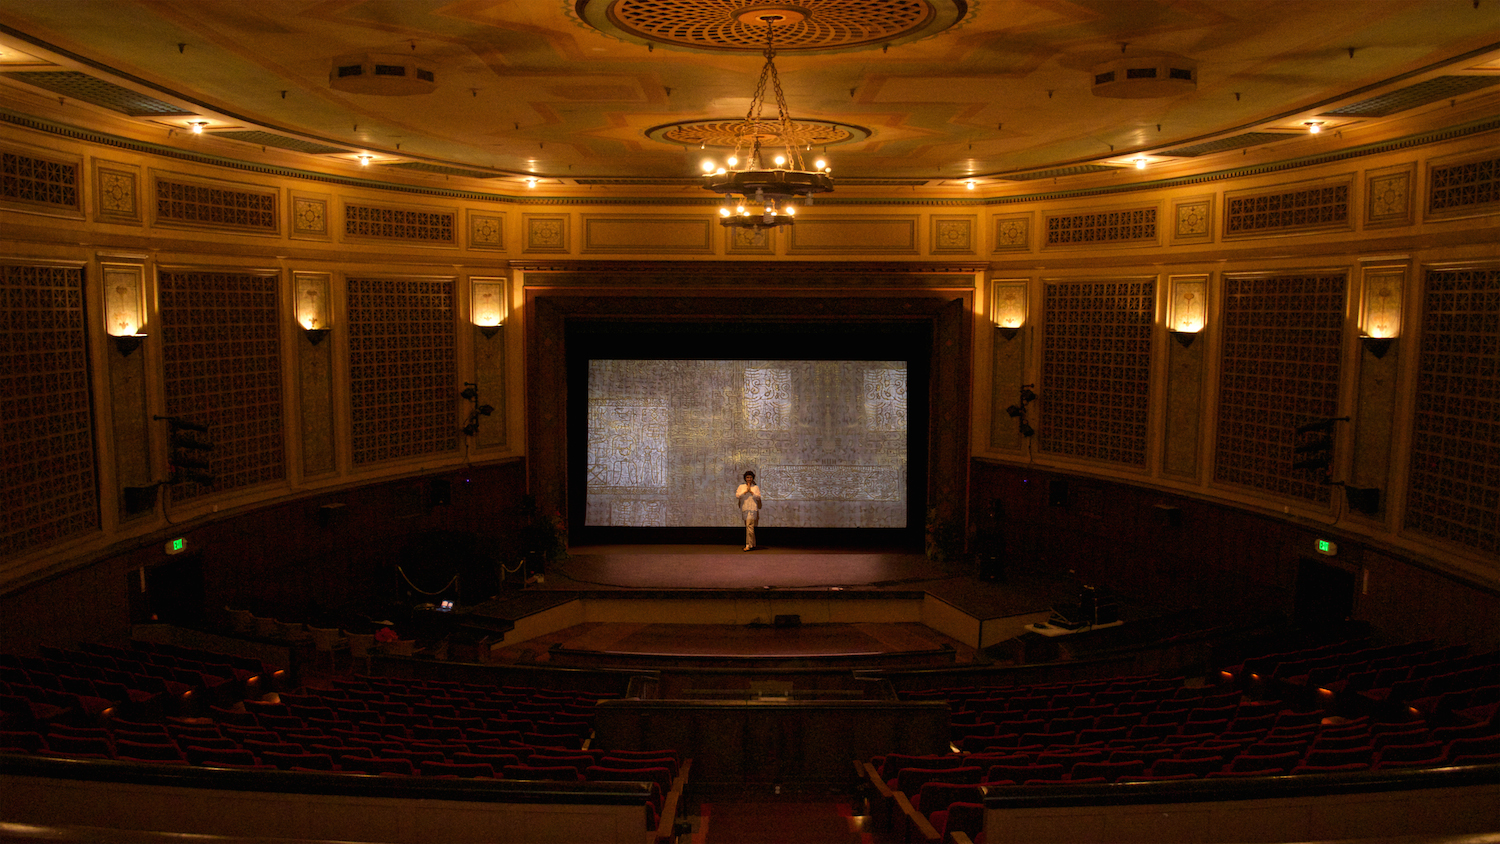 The Art of Strings was a  solo multi-media presentation presented at the Palace Theatre, Hilo Hawai'i in the summer of 2014. Images of Skaggs' paintings were projected on to the large movie screen as a backdrop to Director Ignace Jang, Honolulu Symphony Concert Master and The Hawai'i Performing Arts Festival. The images dissolved one into the next in synchronization to the music adding another dimension to the performance.